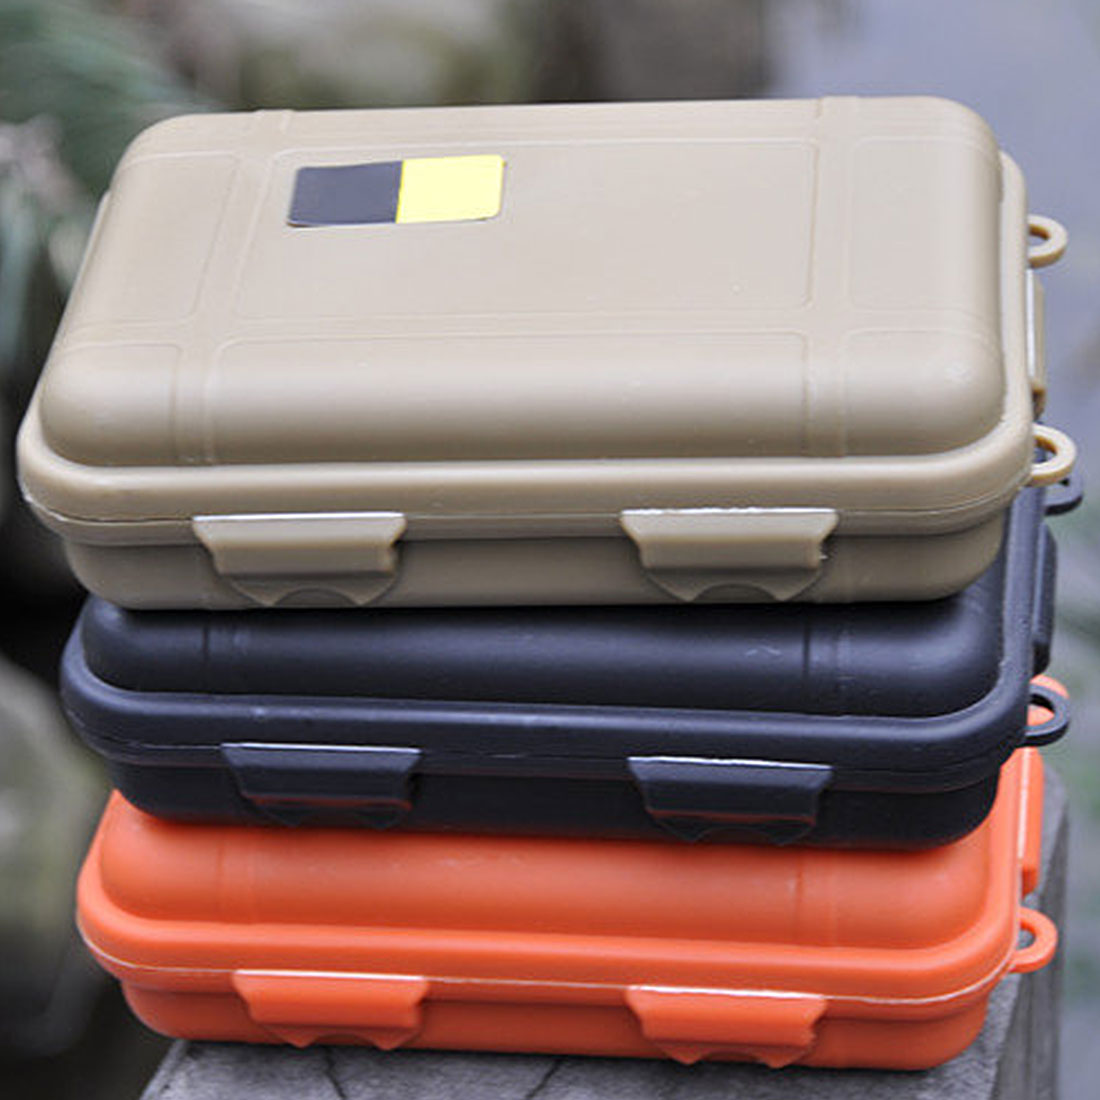 Outdoor Shockproof And Anti-pressure Waterproof Box Wild Survival Storage Box Waterproof Warehouse Sealed Box